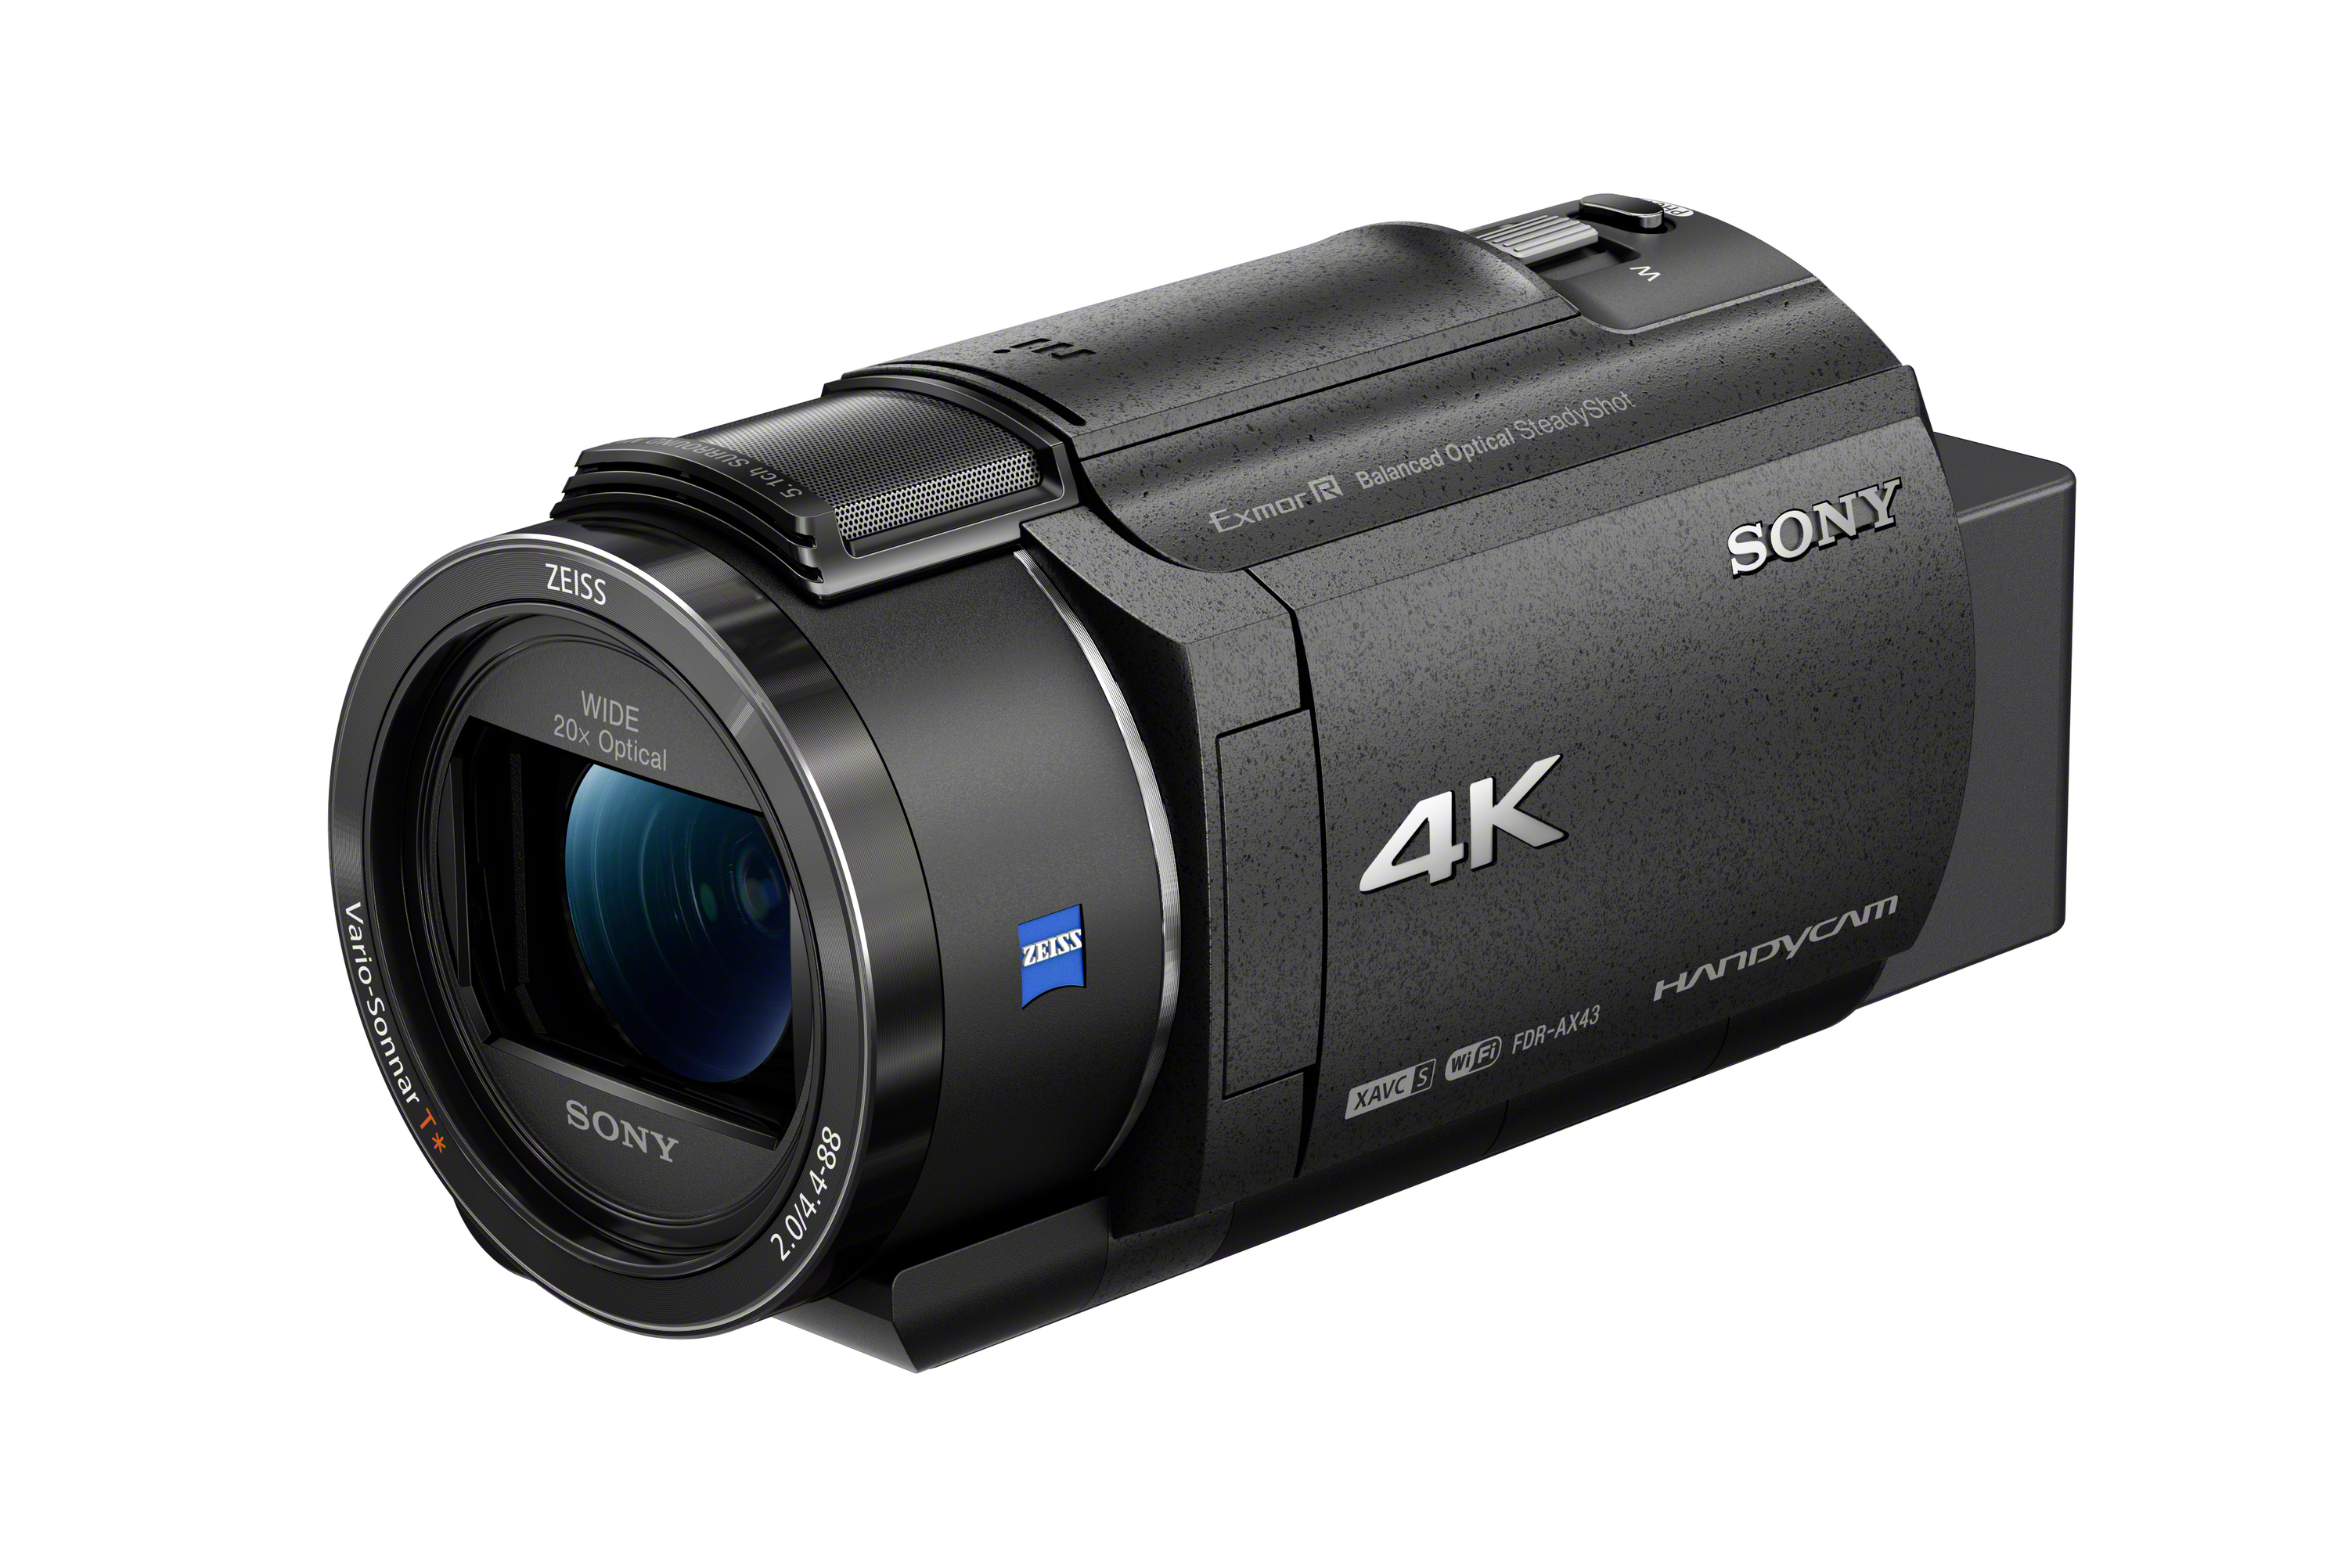 Sony Launches New Compact 4K Handycam® Camcorder with Advanced Image Stabilisation Technology